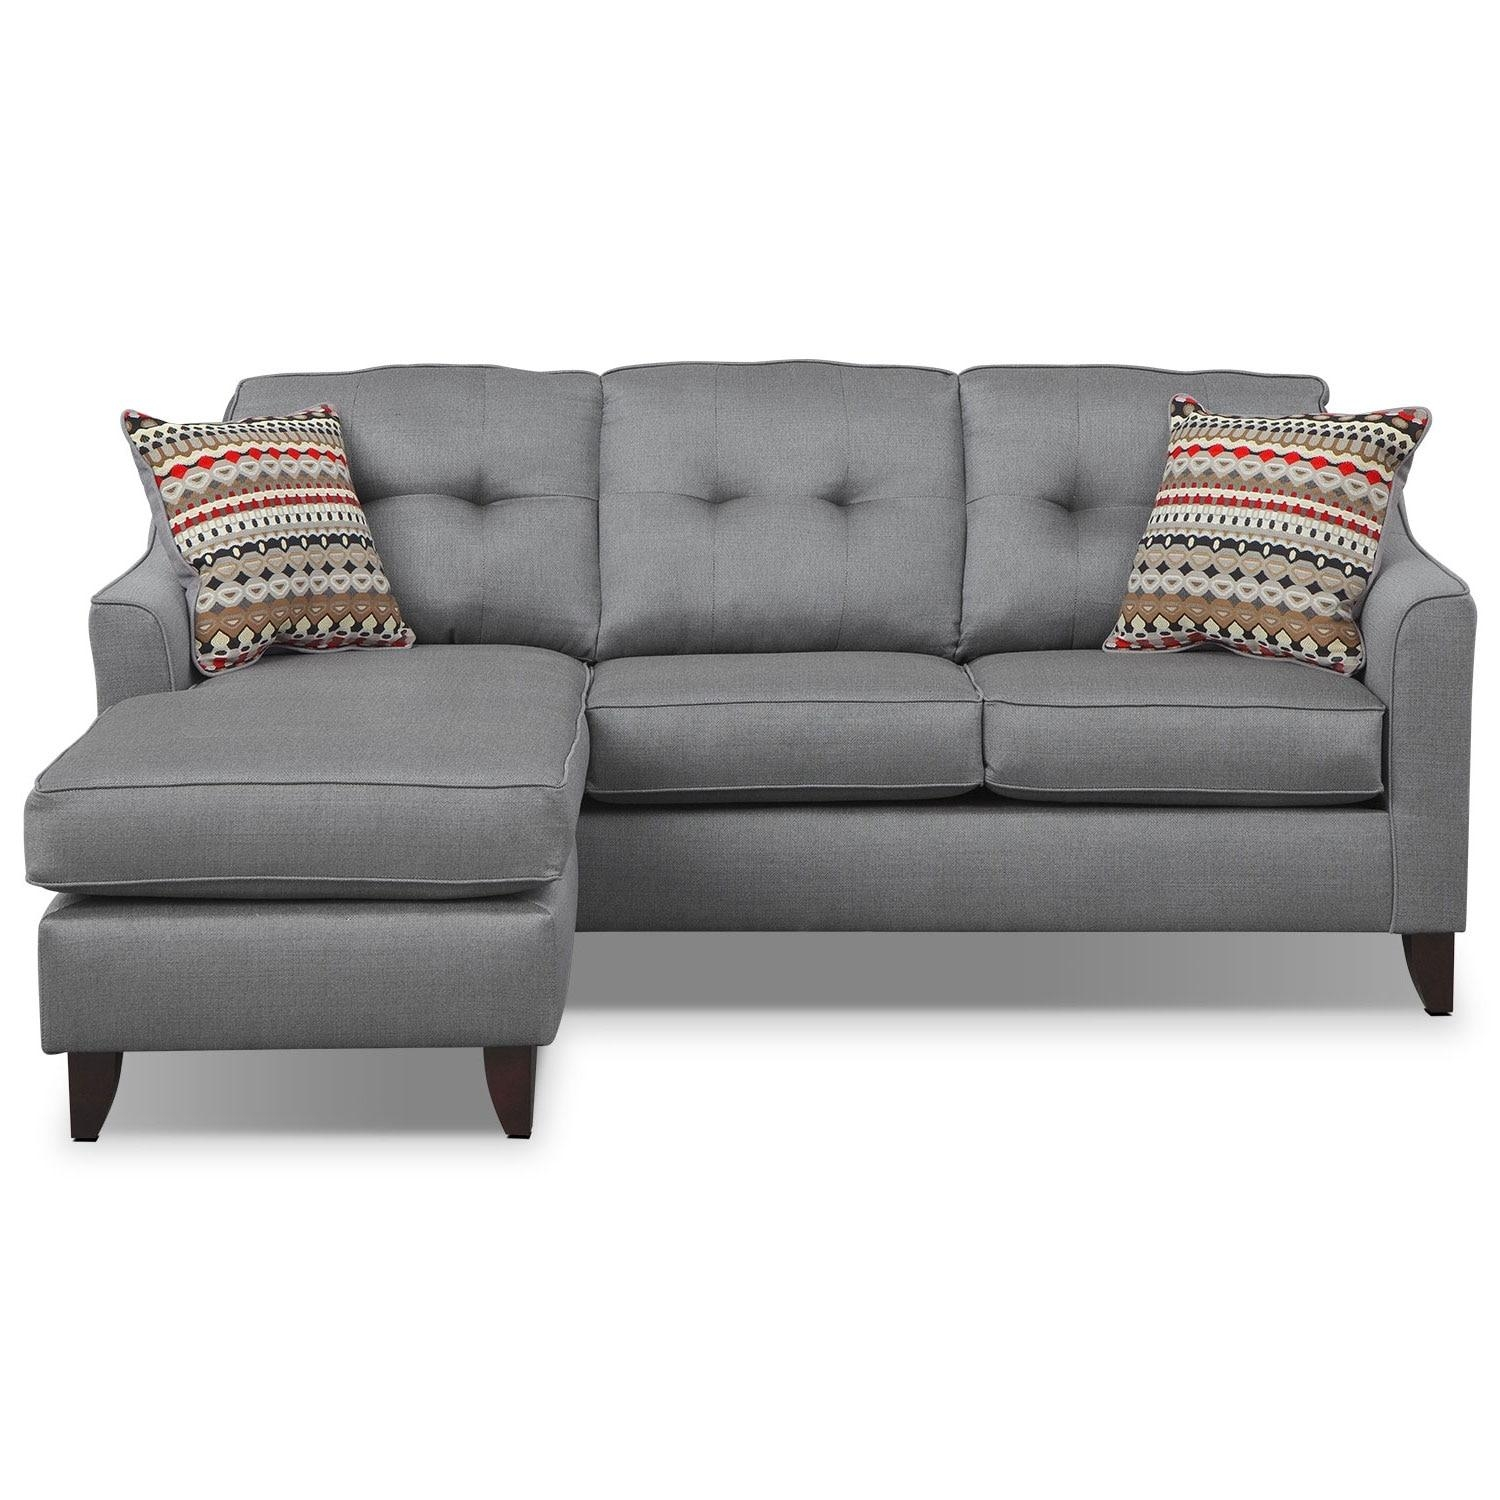 Marco Chaise Sofa – Gray | American Signature Furniture Regarding Chaise Sofas (Image 14 of 20)